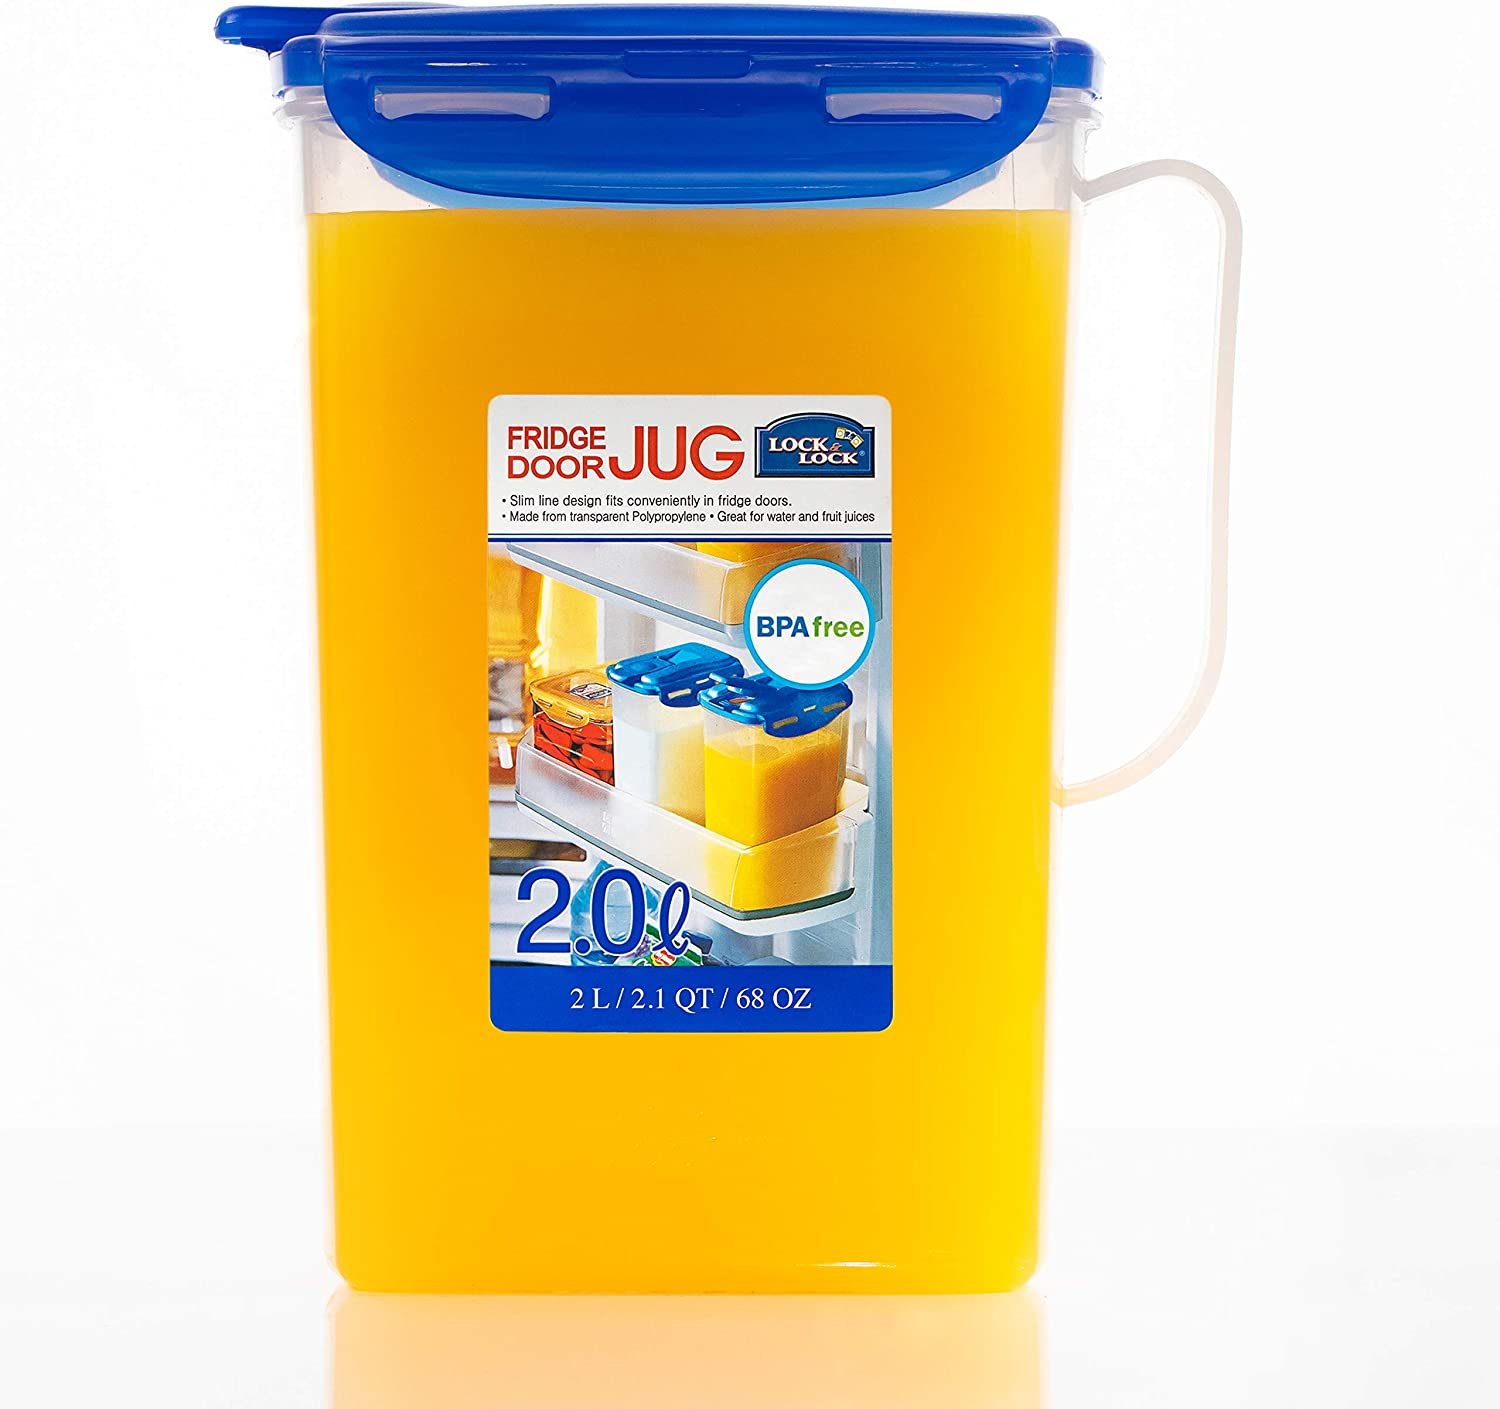 LOCK & LOCK Aqua Fridge Door Water Jug with Handle BPA Free Plastic Pitcher with Flip Top Lid Perfect for Making Teas and Juices, 2 Quarts, Blue